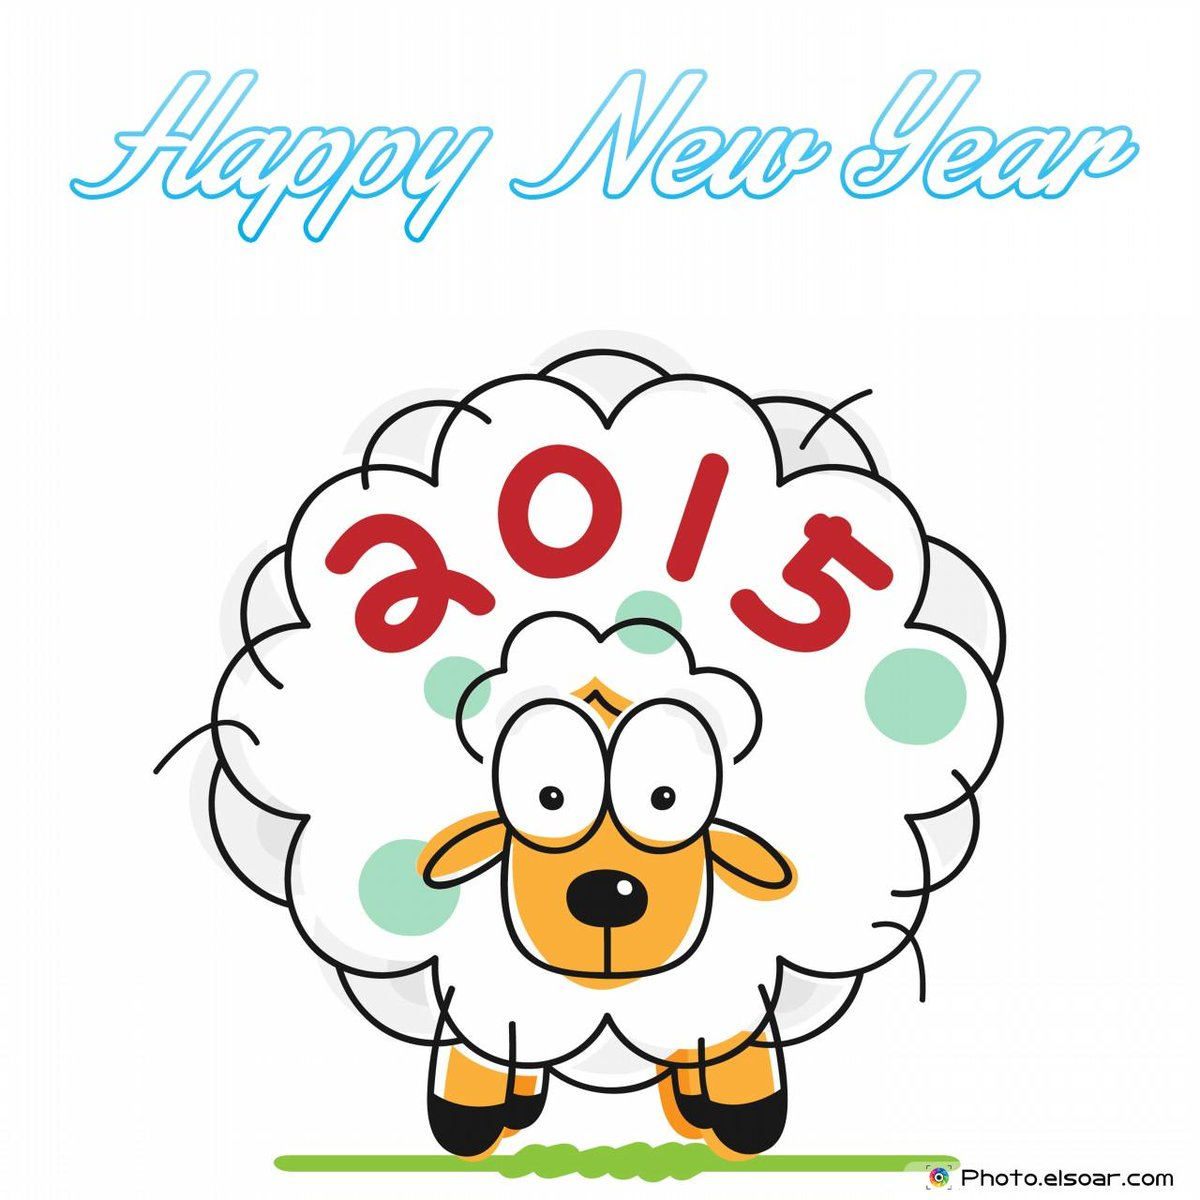 Happy Chinese New Year! http://t.co/kNOVepKMIF